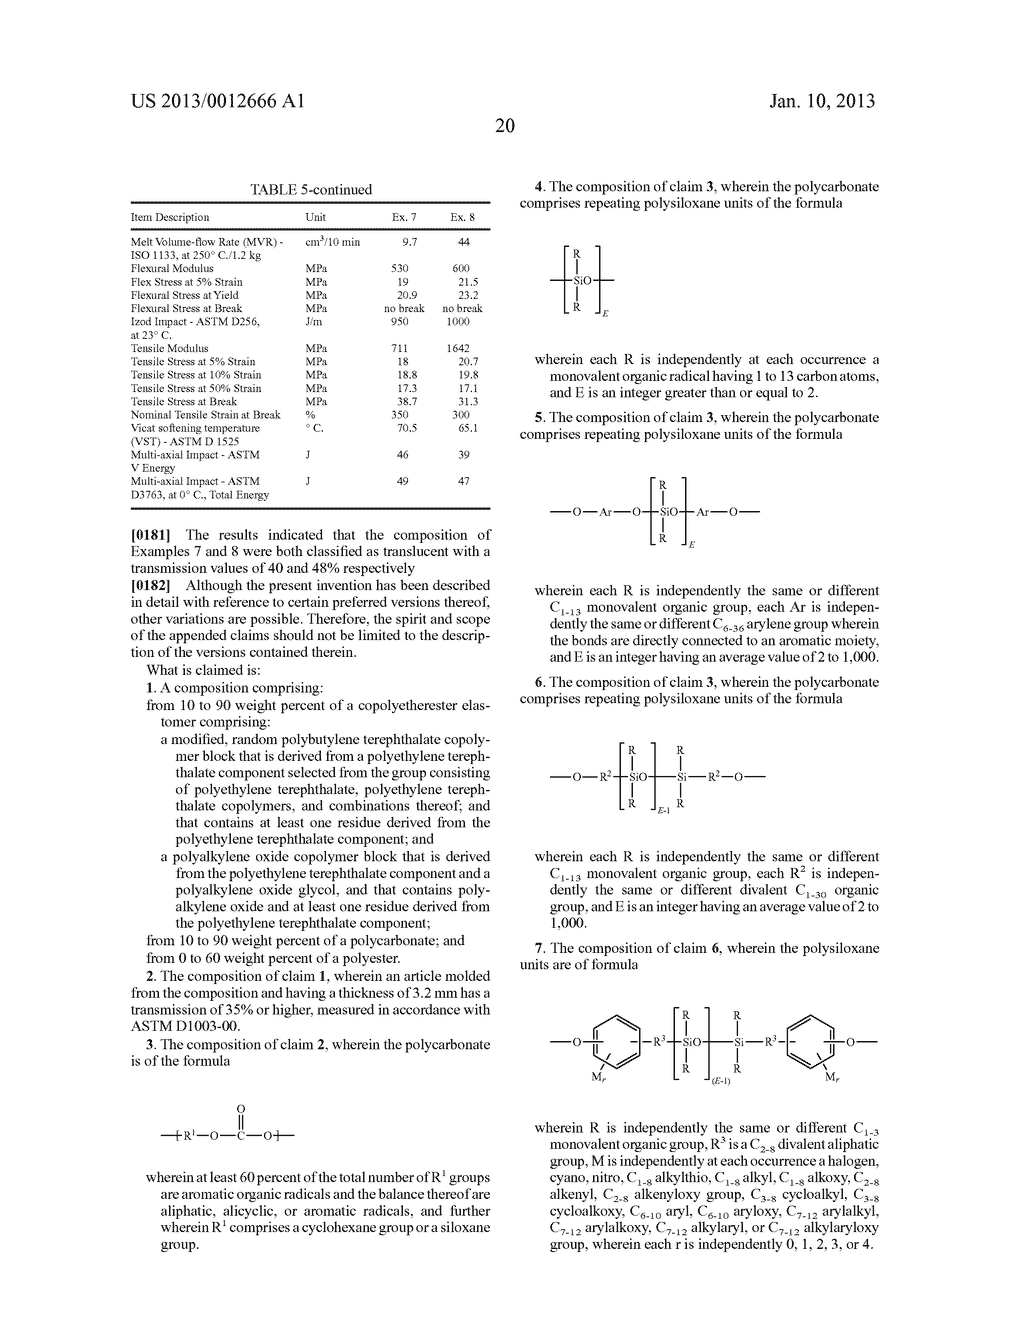 ELASTOMER BLENDS CONTAINING POLYCARBONATES AND COPOLYETHERESTERS DERIVED     FROM POLYETHYLENE TEREPHTHALATE, METHOD OF MANUFACTURE, AND ARTICLES     THEREFROM - diagram, schematic, and image 21